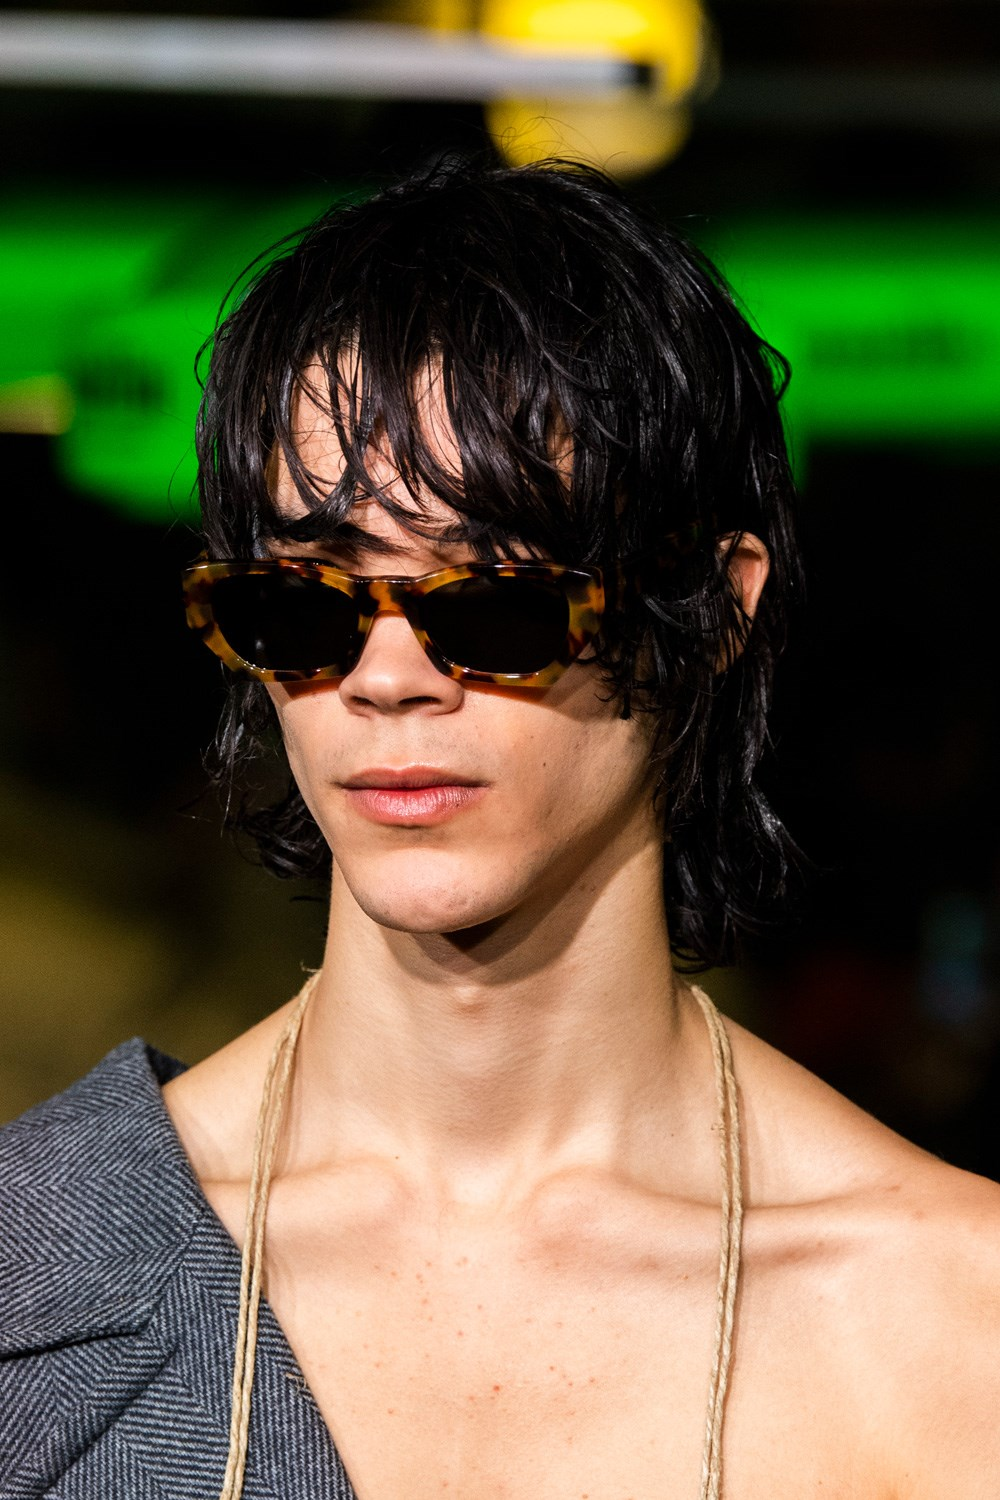 Magliano Fall 2020 Men's Fashion Show Photos